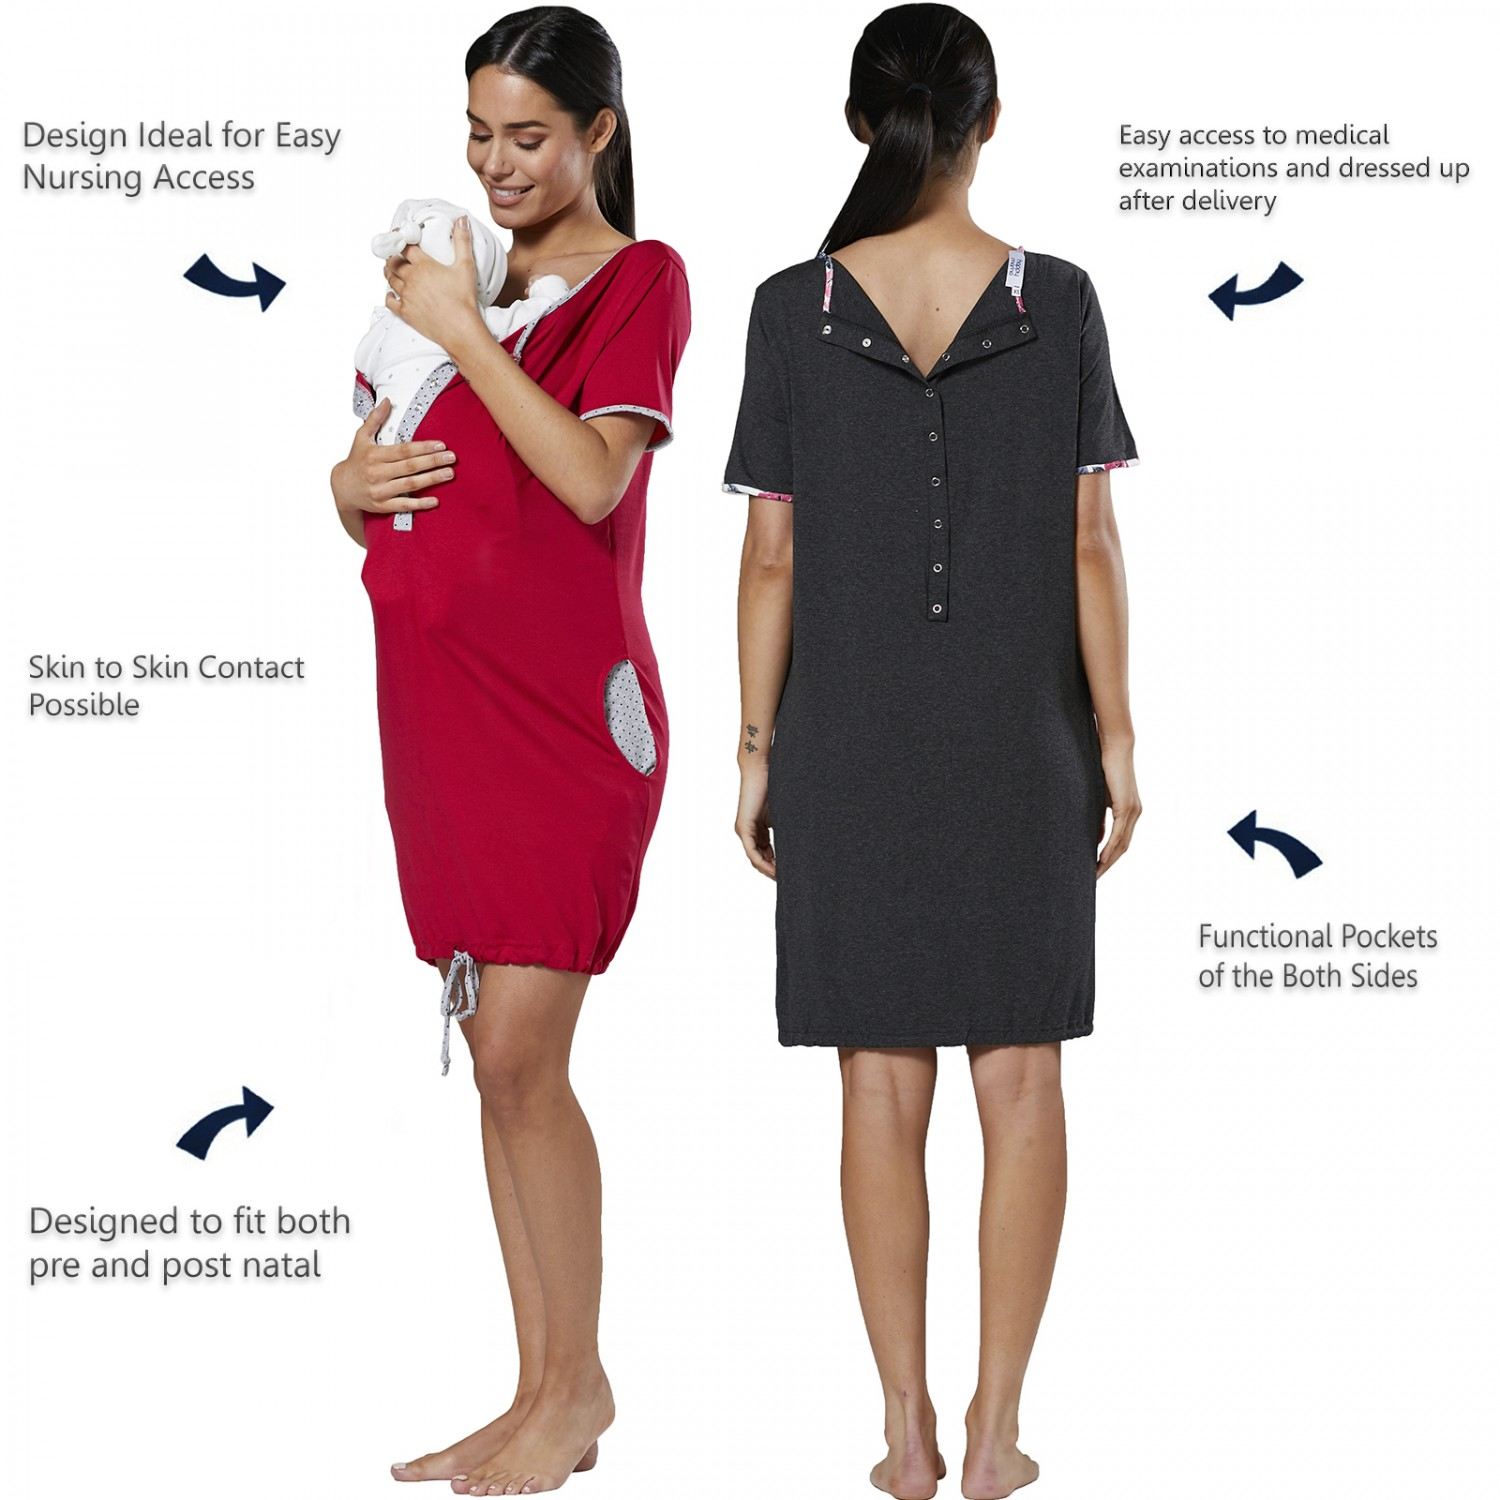 Happy-Mama-Women-039-s-Maternity-Nursing-Delivery-Hospital-Gown-Nightwear-209p thumbnail 3